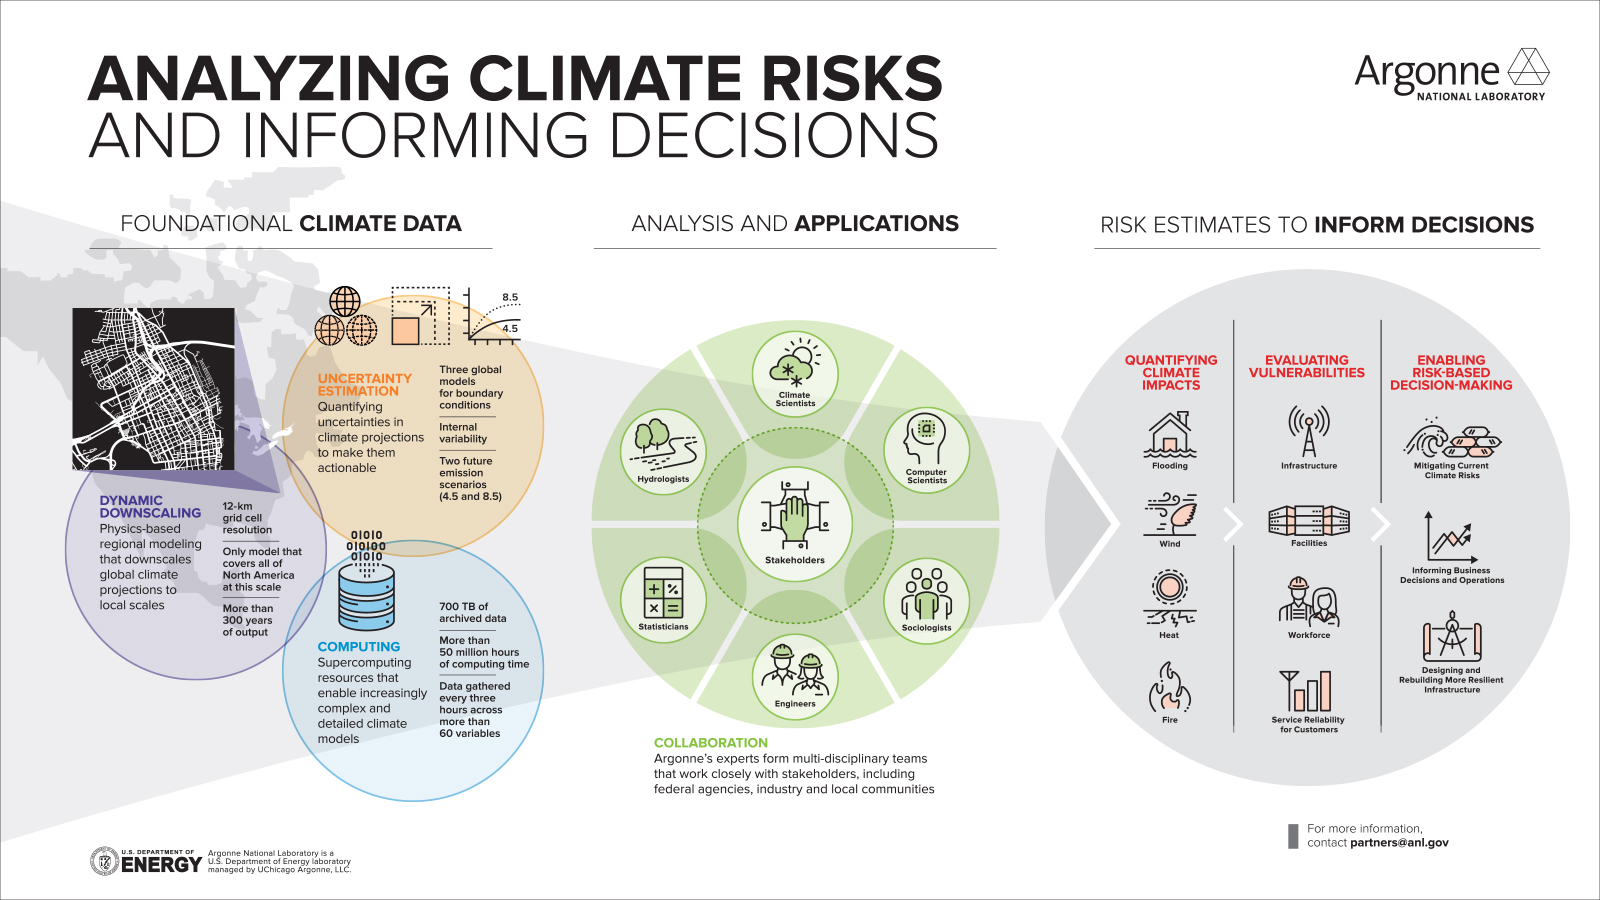 Argonne helps organizations with extensive infrastructure better prepare for and adapt to the impacts of climate change and extreme weather events. (Image by Argonne National Laboratory.)